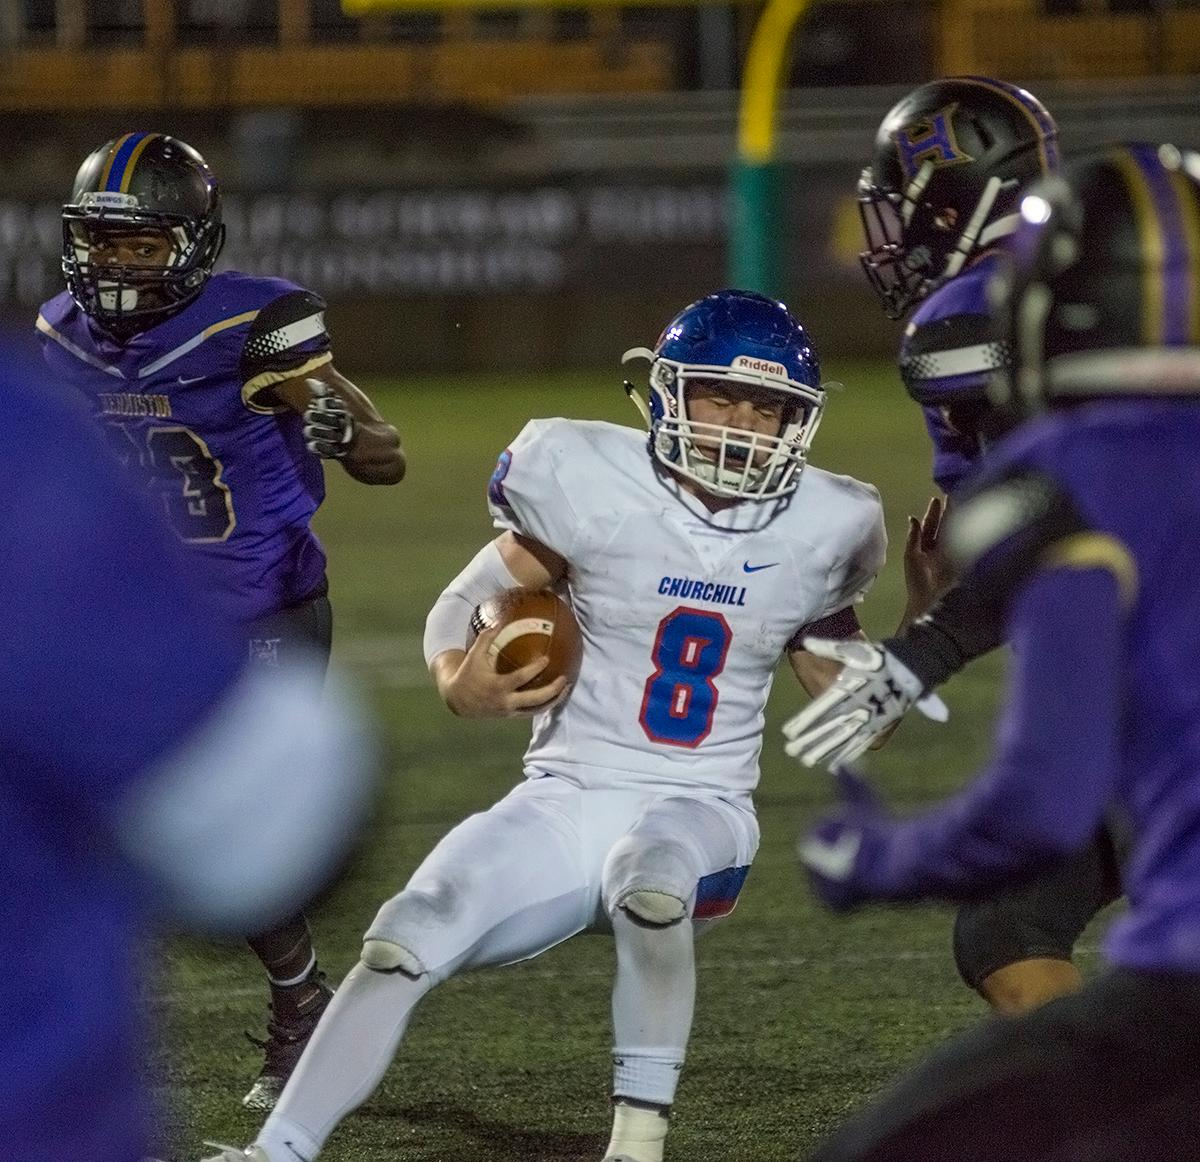 Churchill Lancers running back Dalton McDaniel (#8) is surrounded by Hermiston Bulldogs defense during a play.The Hermiston Bulldogs defeated the Churchill Lancers 38-35 for the 5A state title Saturday evening at Hillsboro Stadium. Photo by Abigail Winn, Oregon News Lab